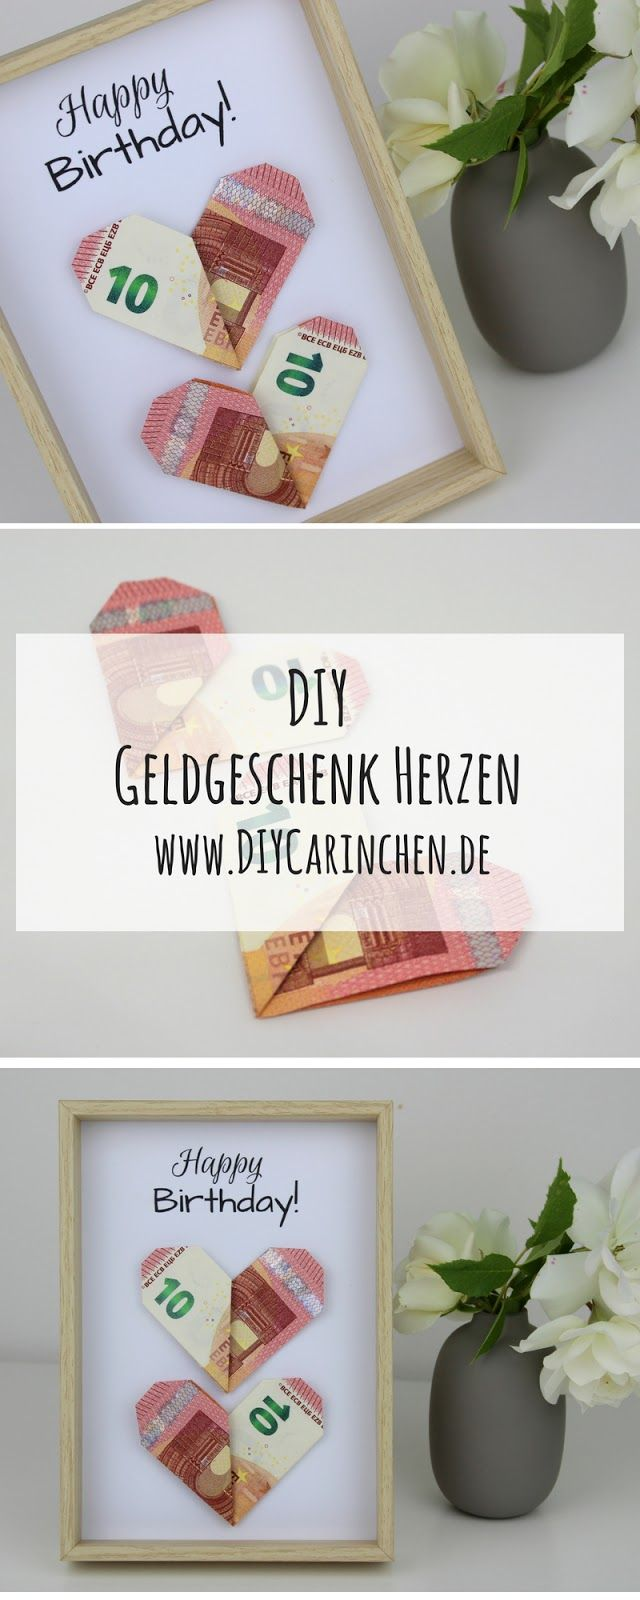 diy geldgeschenk herzen nach origami art die perfekte. Black Bedroom Furniture Sets. Home Design Ideas